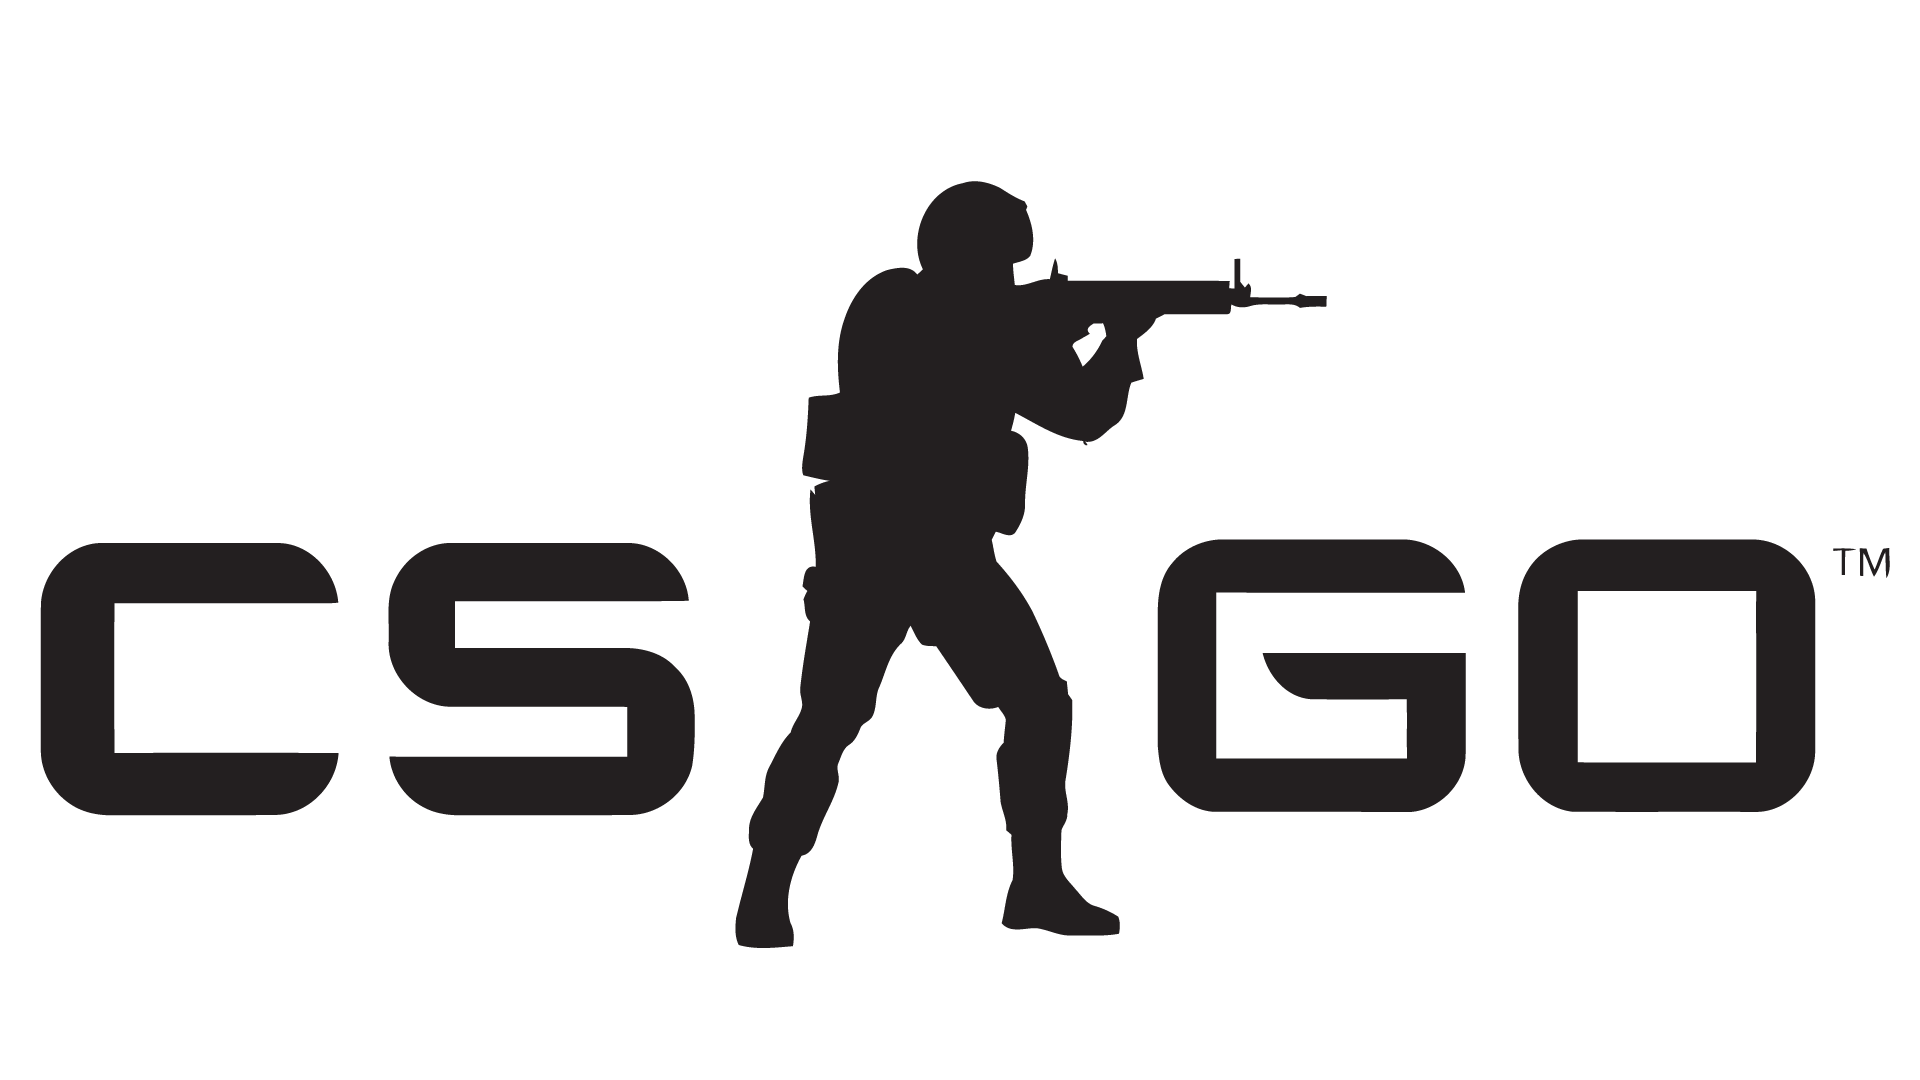 clipart black and white library  png for free. Transparent csgo